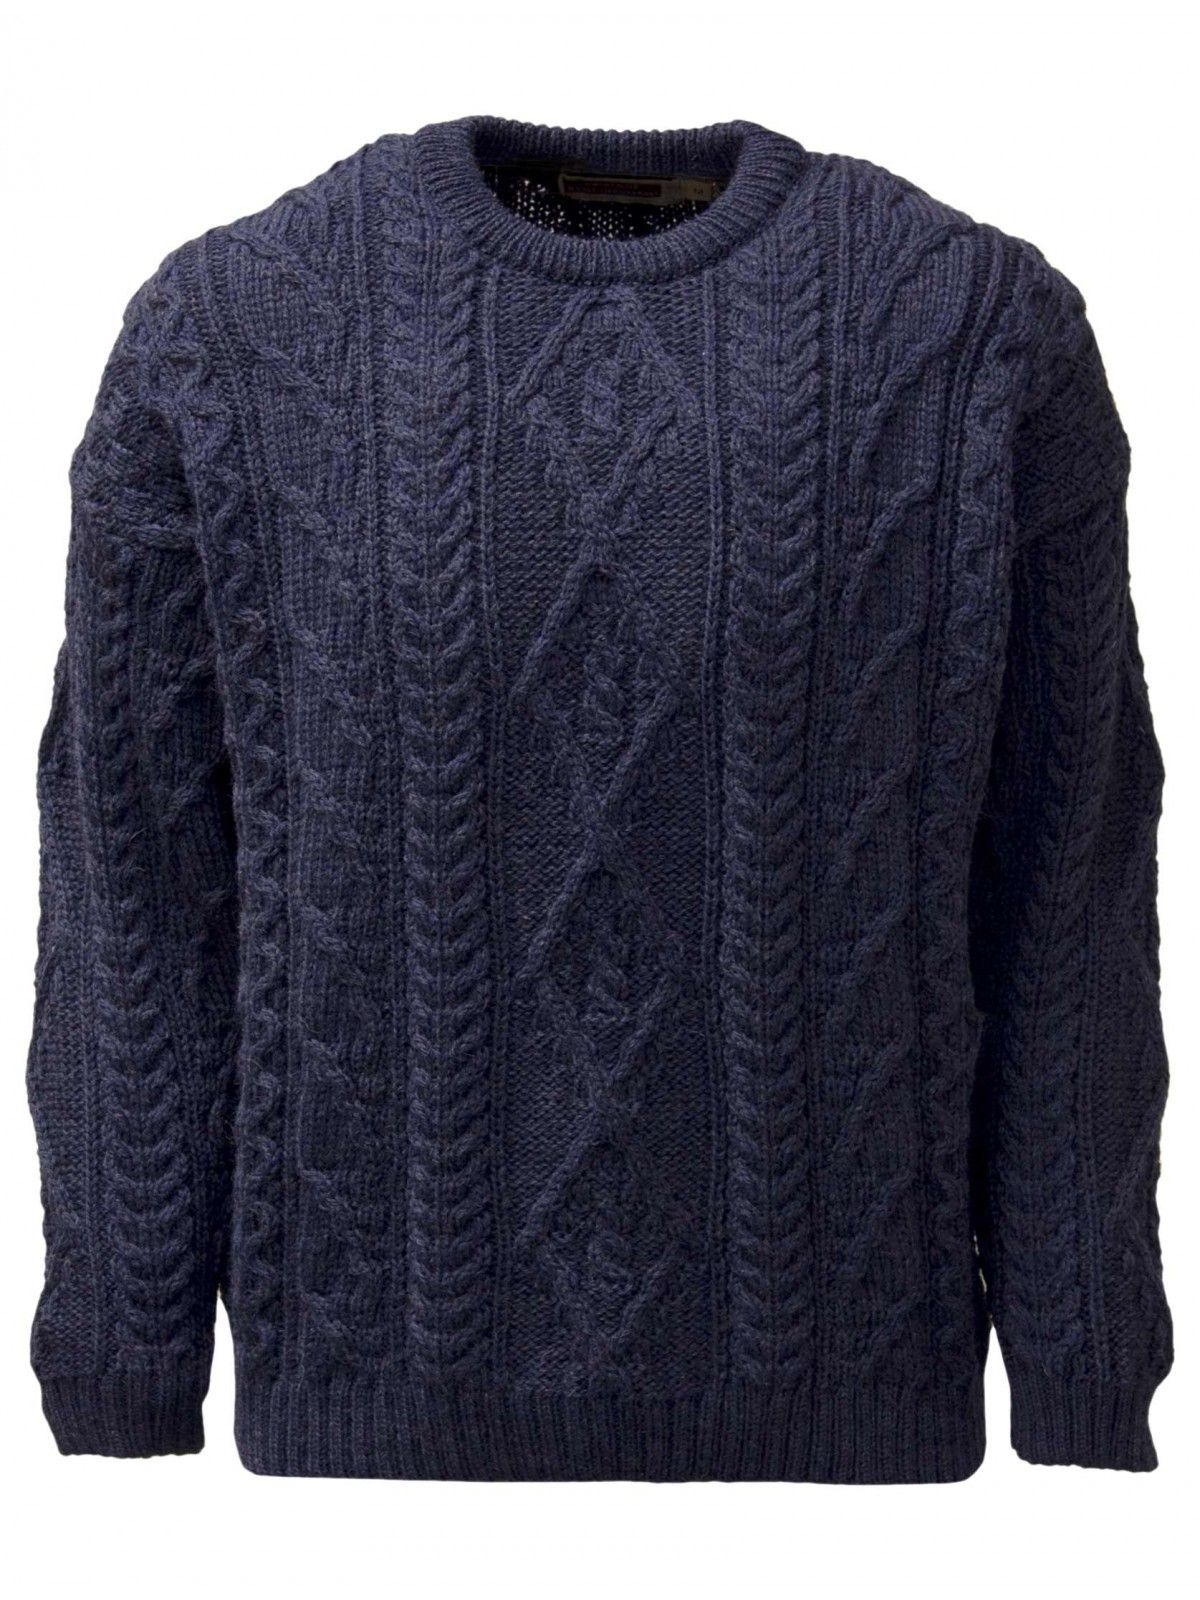 Round Neck Cable Front Jumper By Highland Home Industries In A Traditional And Tricot